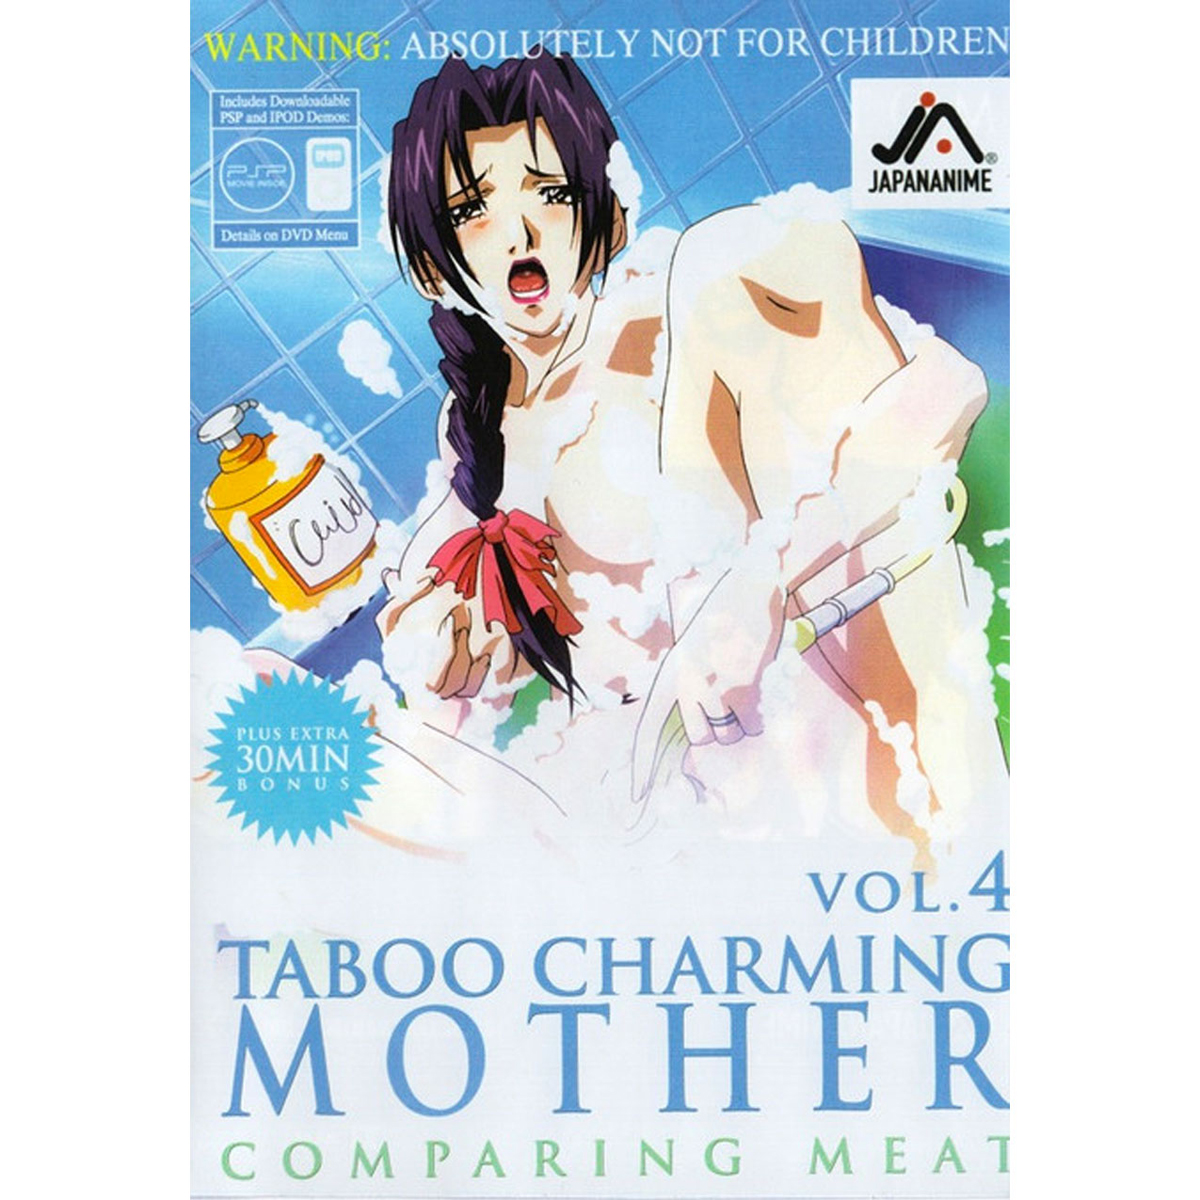 Taboo Charming Mother DVD 4